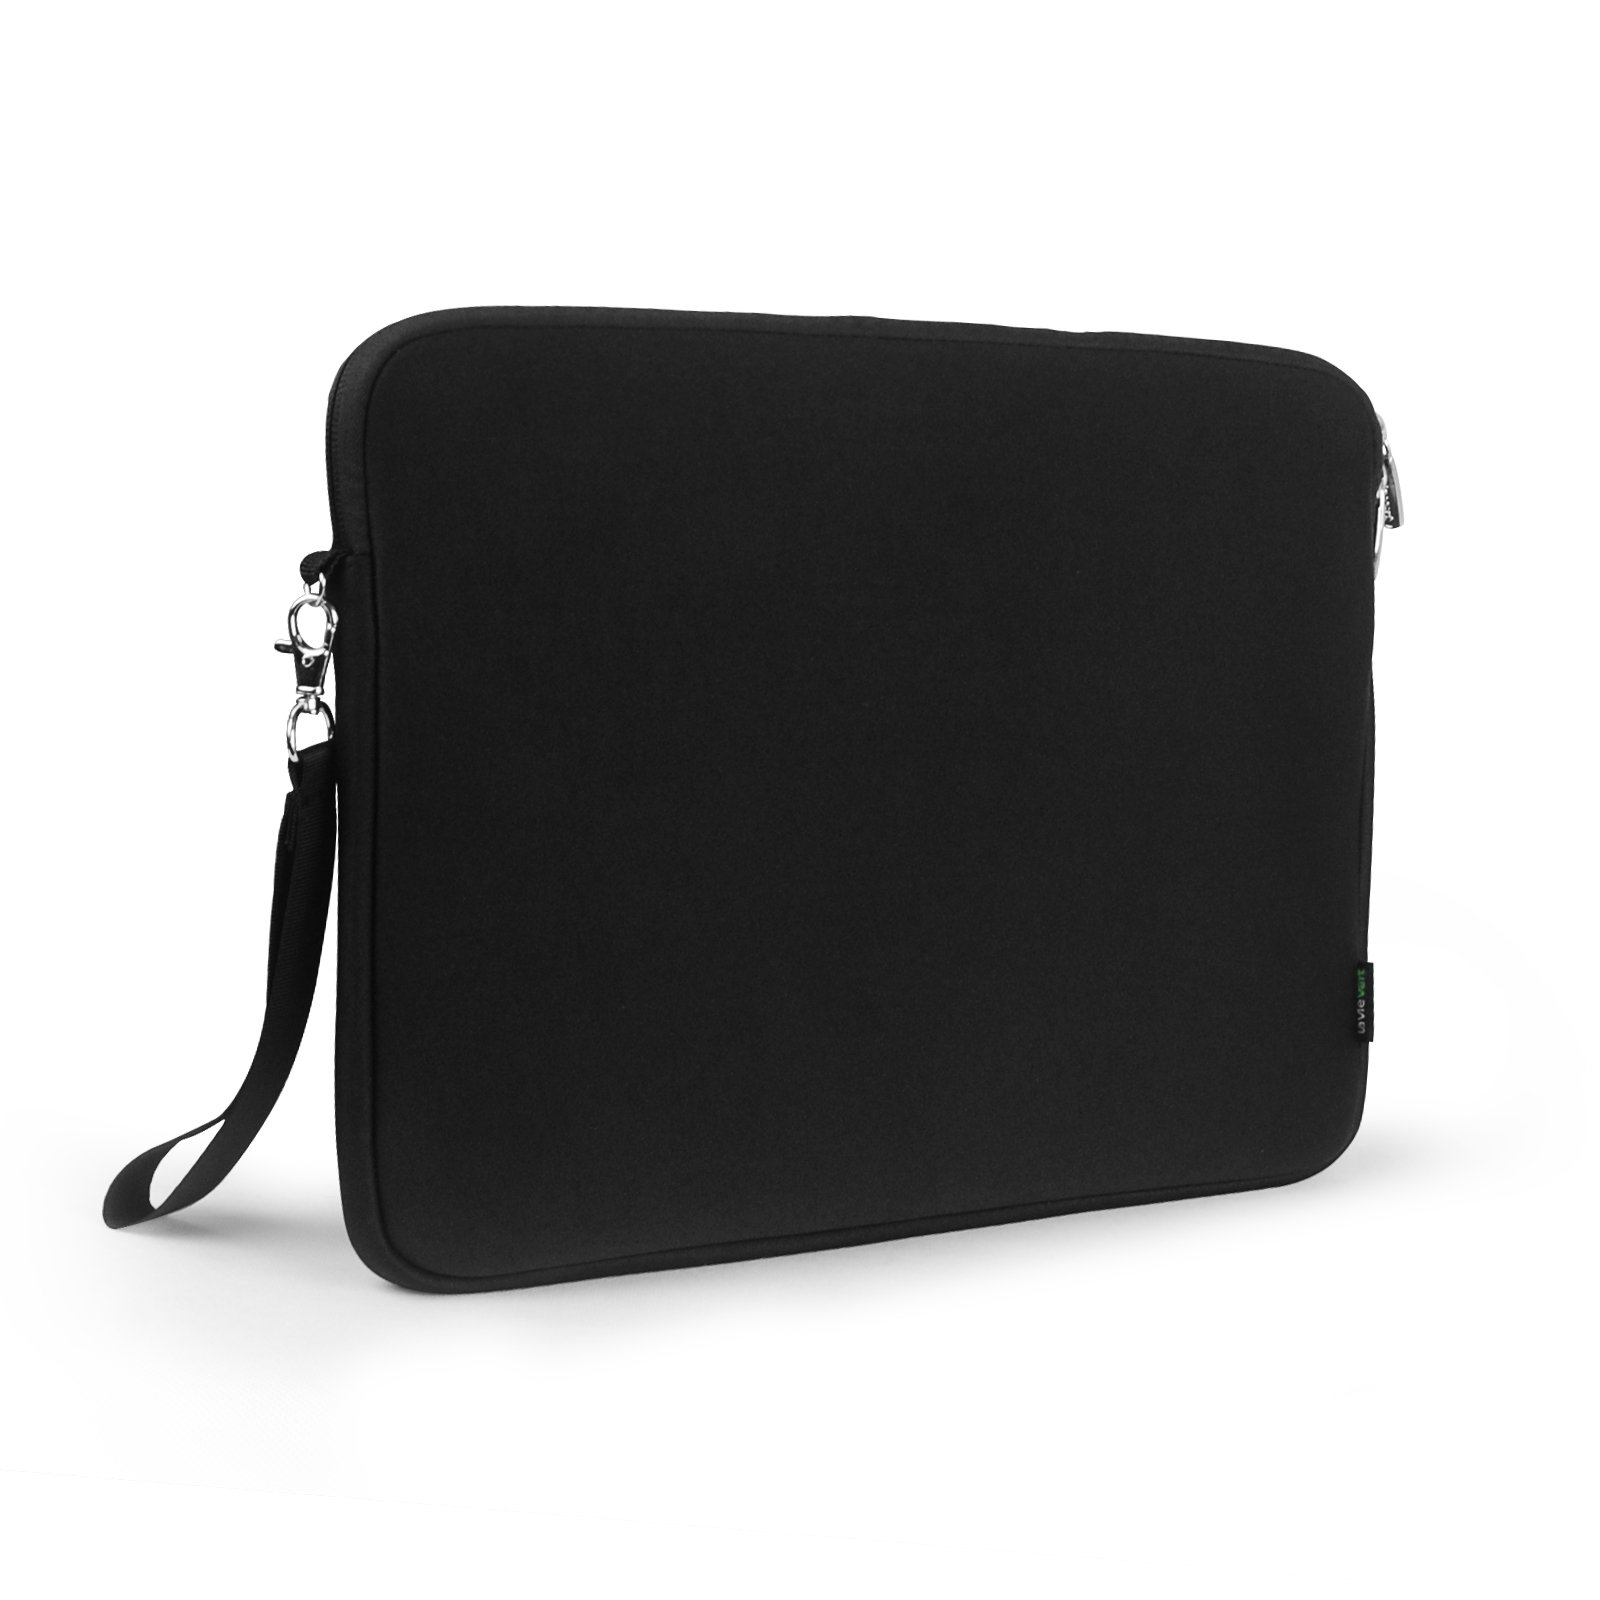 Lavievert Soft Neoprene(Water Resistance) Sleeve Simple and Elegant Case Bag Cover for Apple 15 inch MacBook Retina Pro, 15 inch MacBook Pro and Most Popular 15-15.6 Inch Laptops– Black